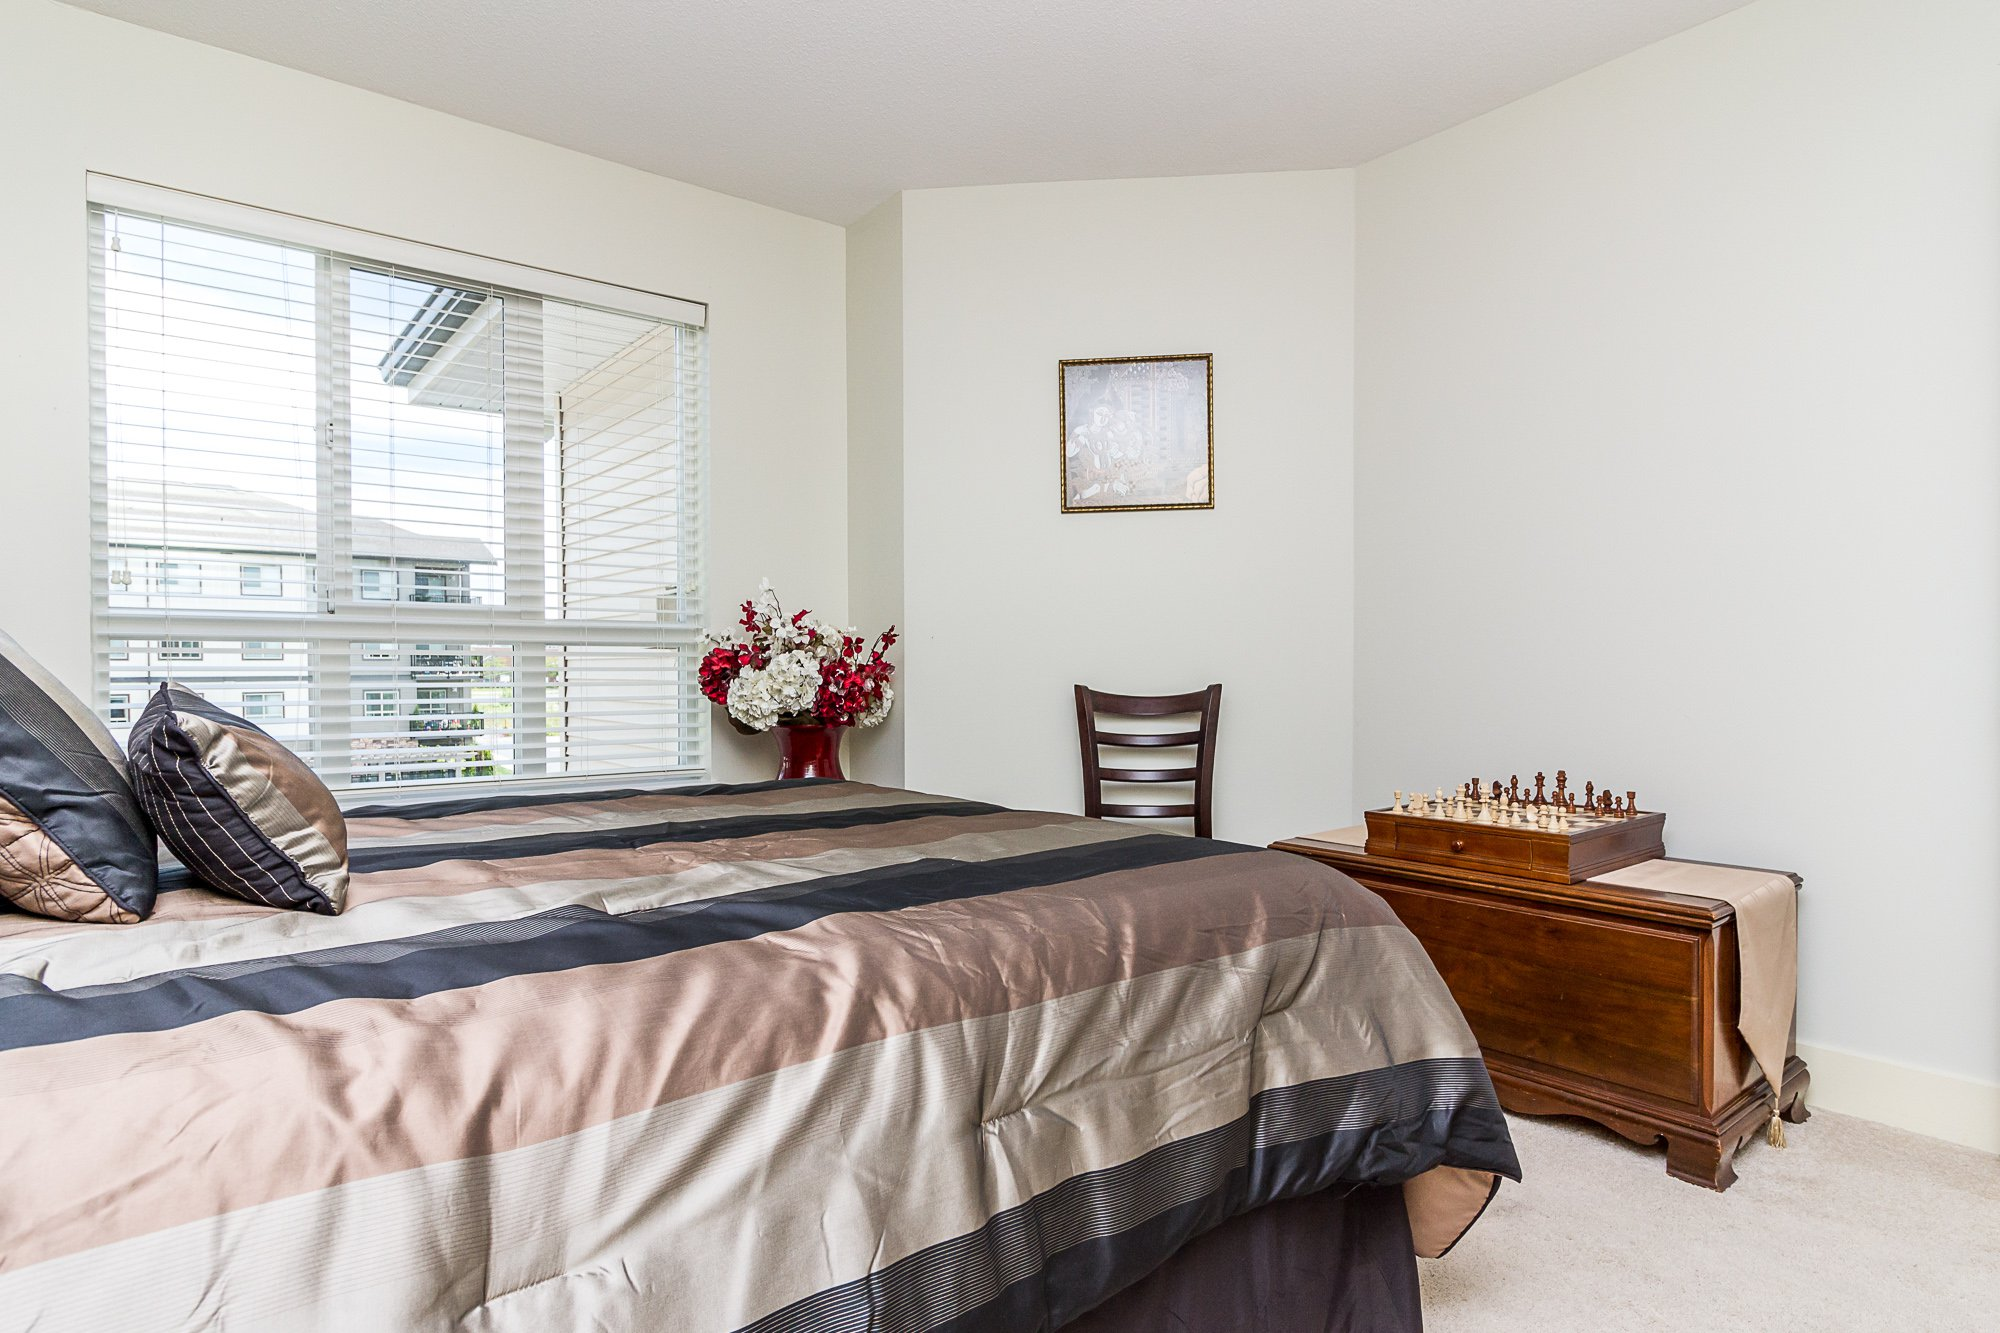 """Photo 23: Photos: 412 22022 49 Avenue in Langley: Murrayville Condo for sale in """"Murray Green"""" : MLS®# R2266359"""